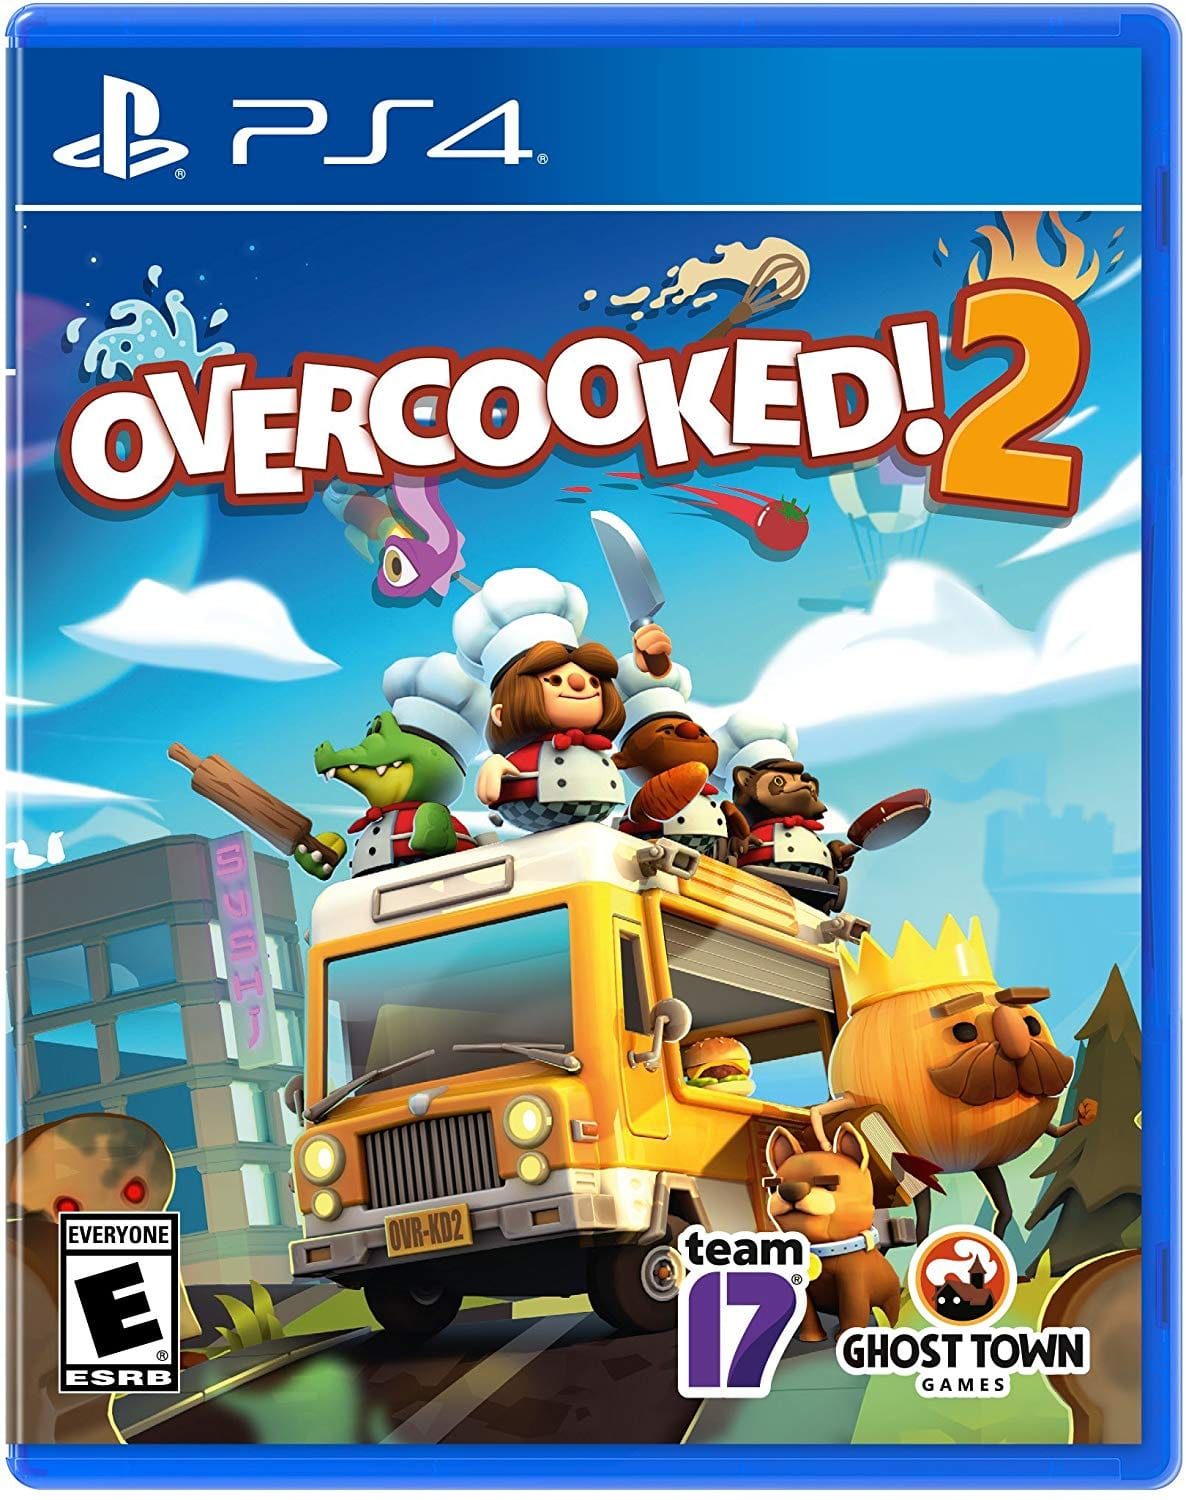 Overcooked 2! PS4 and Xbox ($23.99) or switch ($31.99) prime Savings! for amazon prime members